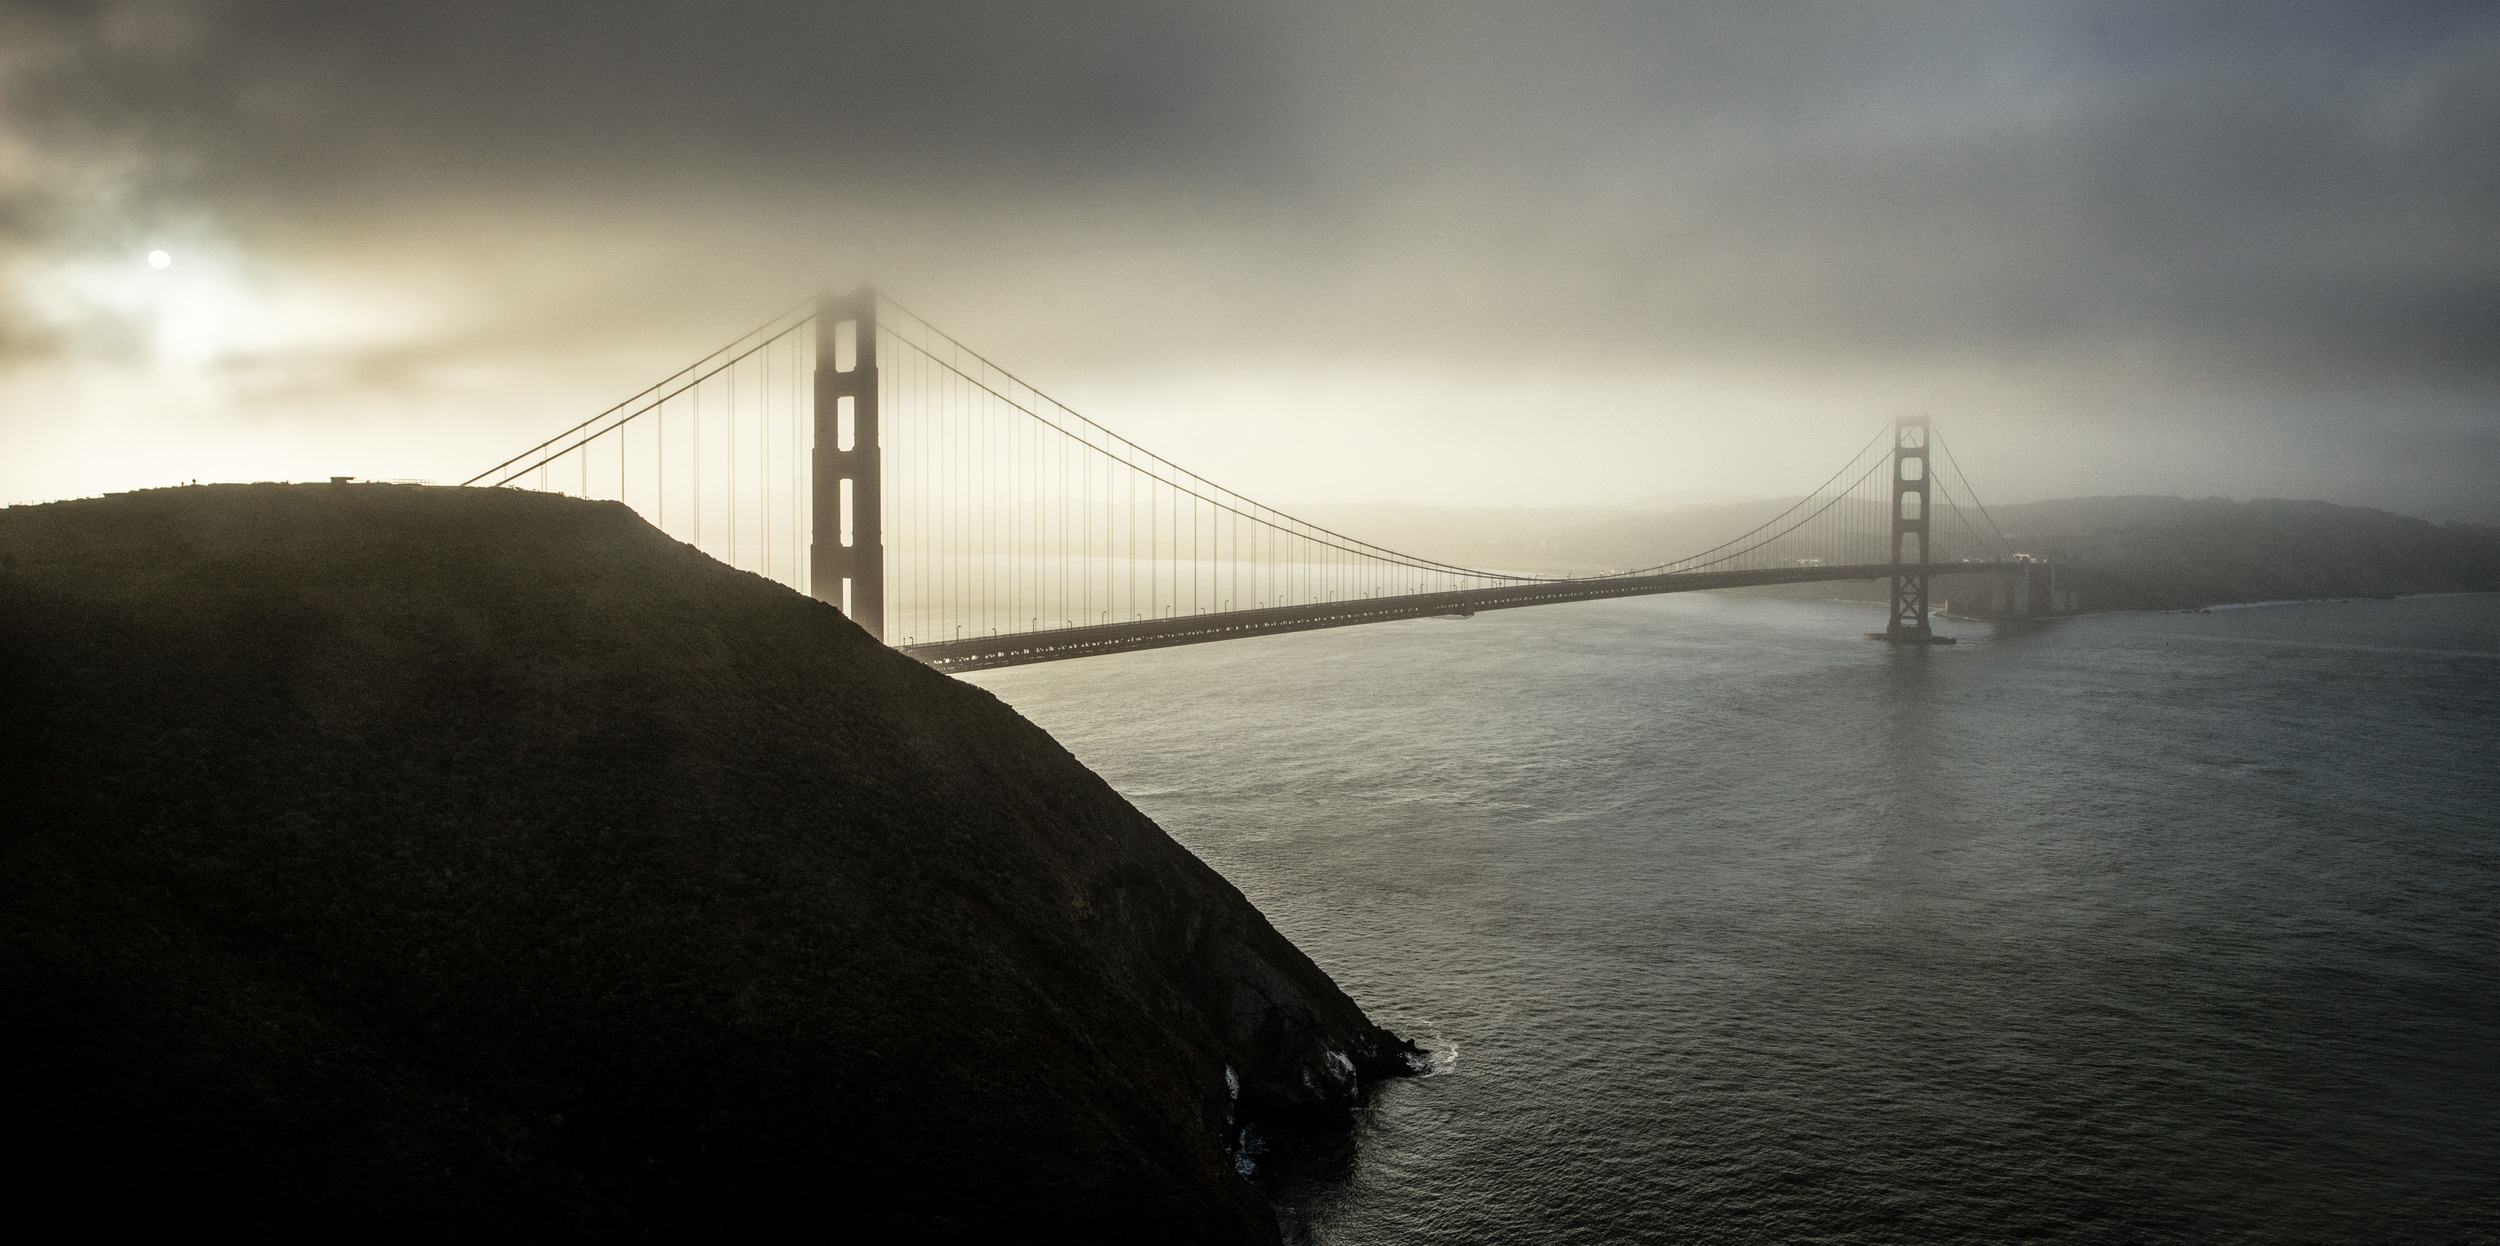 goldengate-8173-Edit-2.jpg